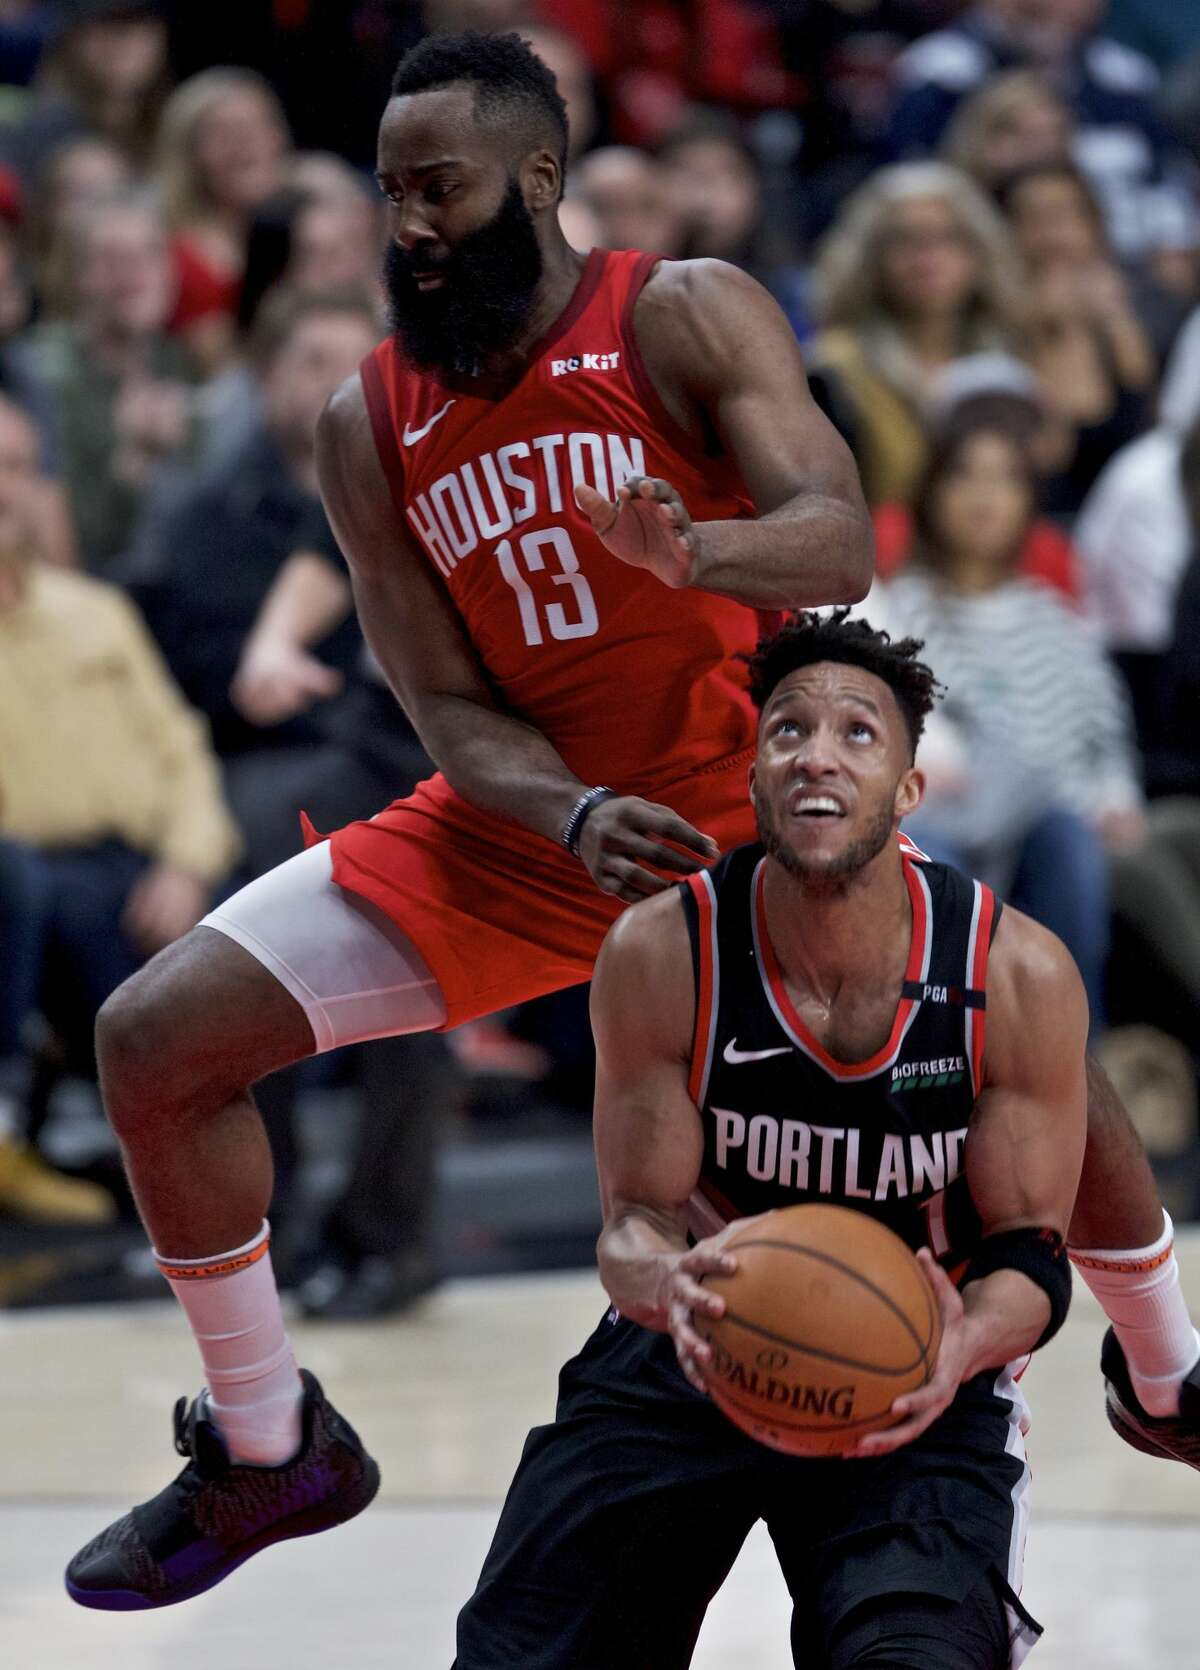 Portland Trail Blazers guard Evan Turner, right, is fouled by Houston Rockets guard James Harden during the second half of an NBA basketball game in Portland, Ore., Saturday, Jan. 5, 2019. (AP Photo/Craig Mitchelldyer)